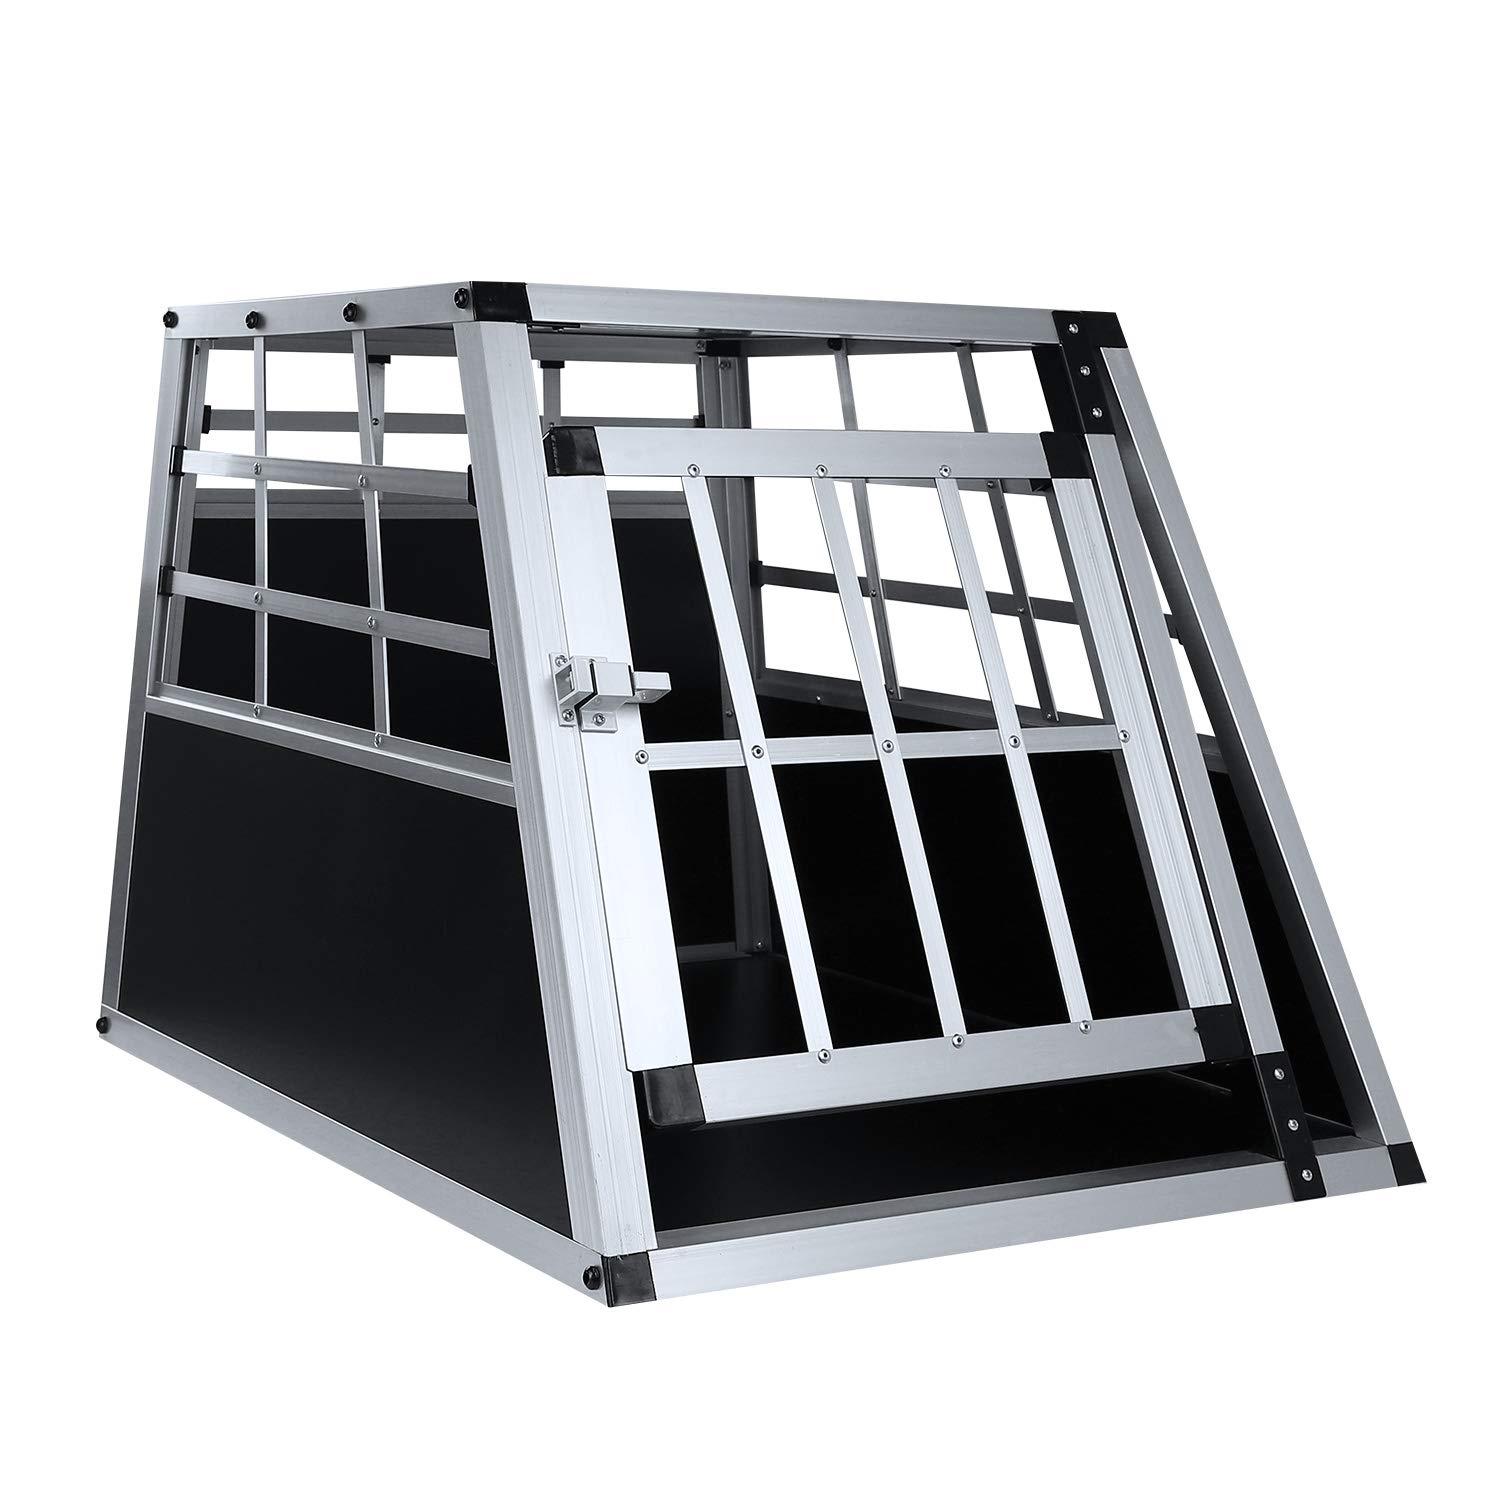 Al Alloy Dog Cage Car Transport Dogs Crate Aluminium Pet Travel Kennel Animal Carrier House Training Box Aluminium Flat Strip Big Double Door with Panel 104/×91/×69cm